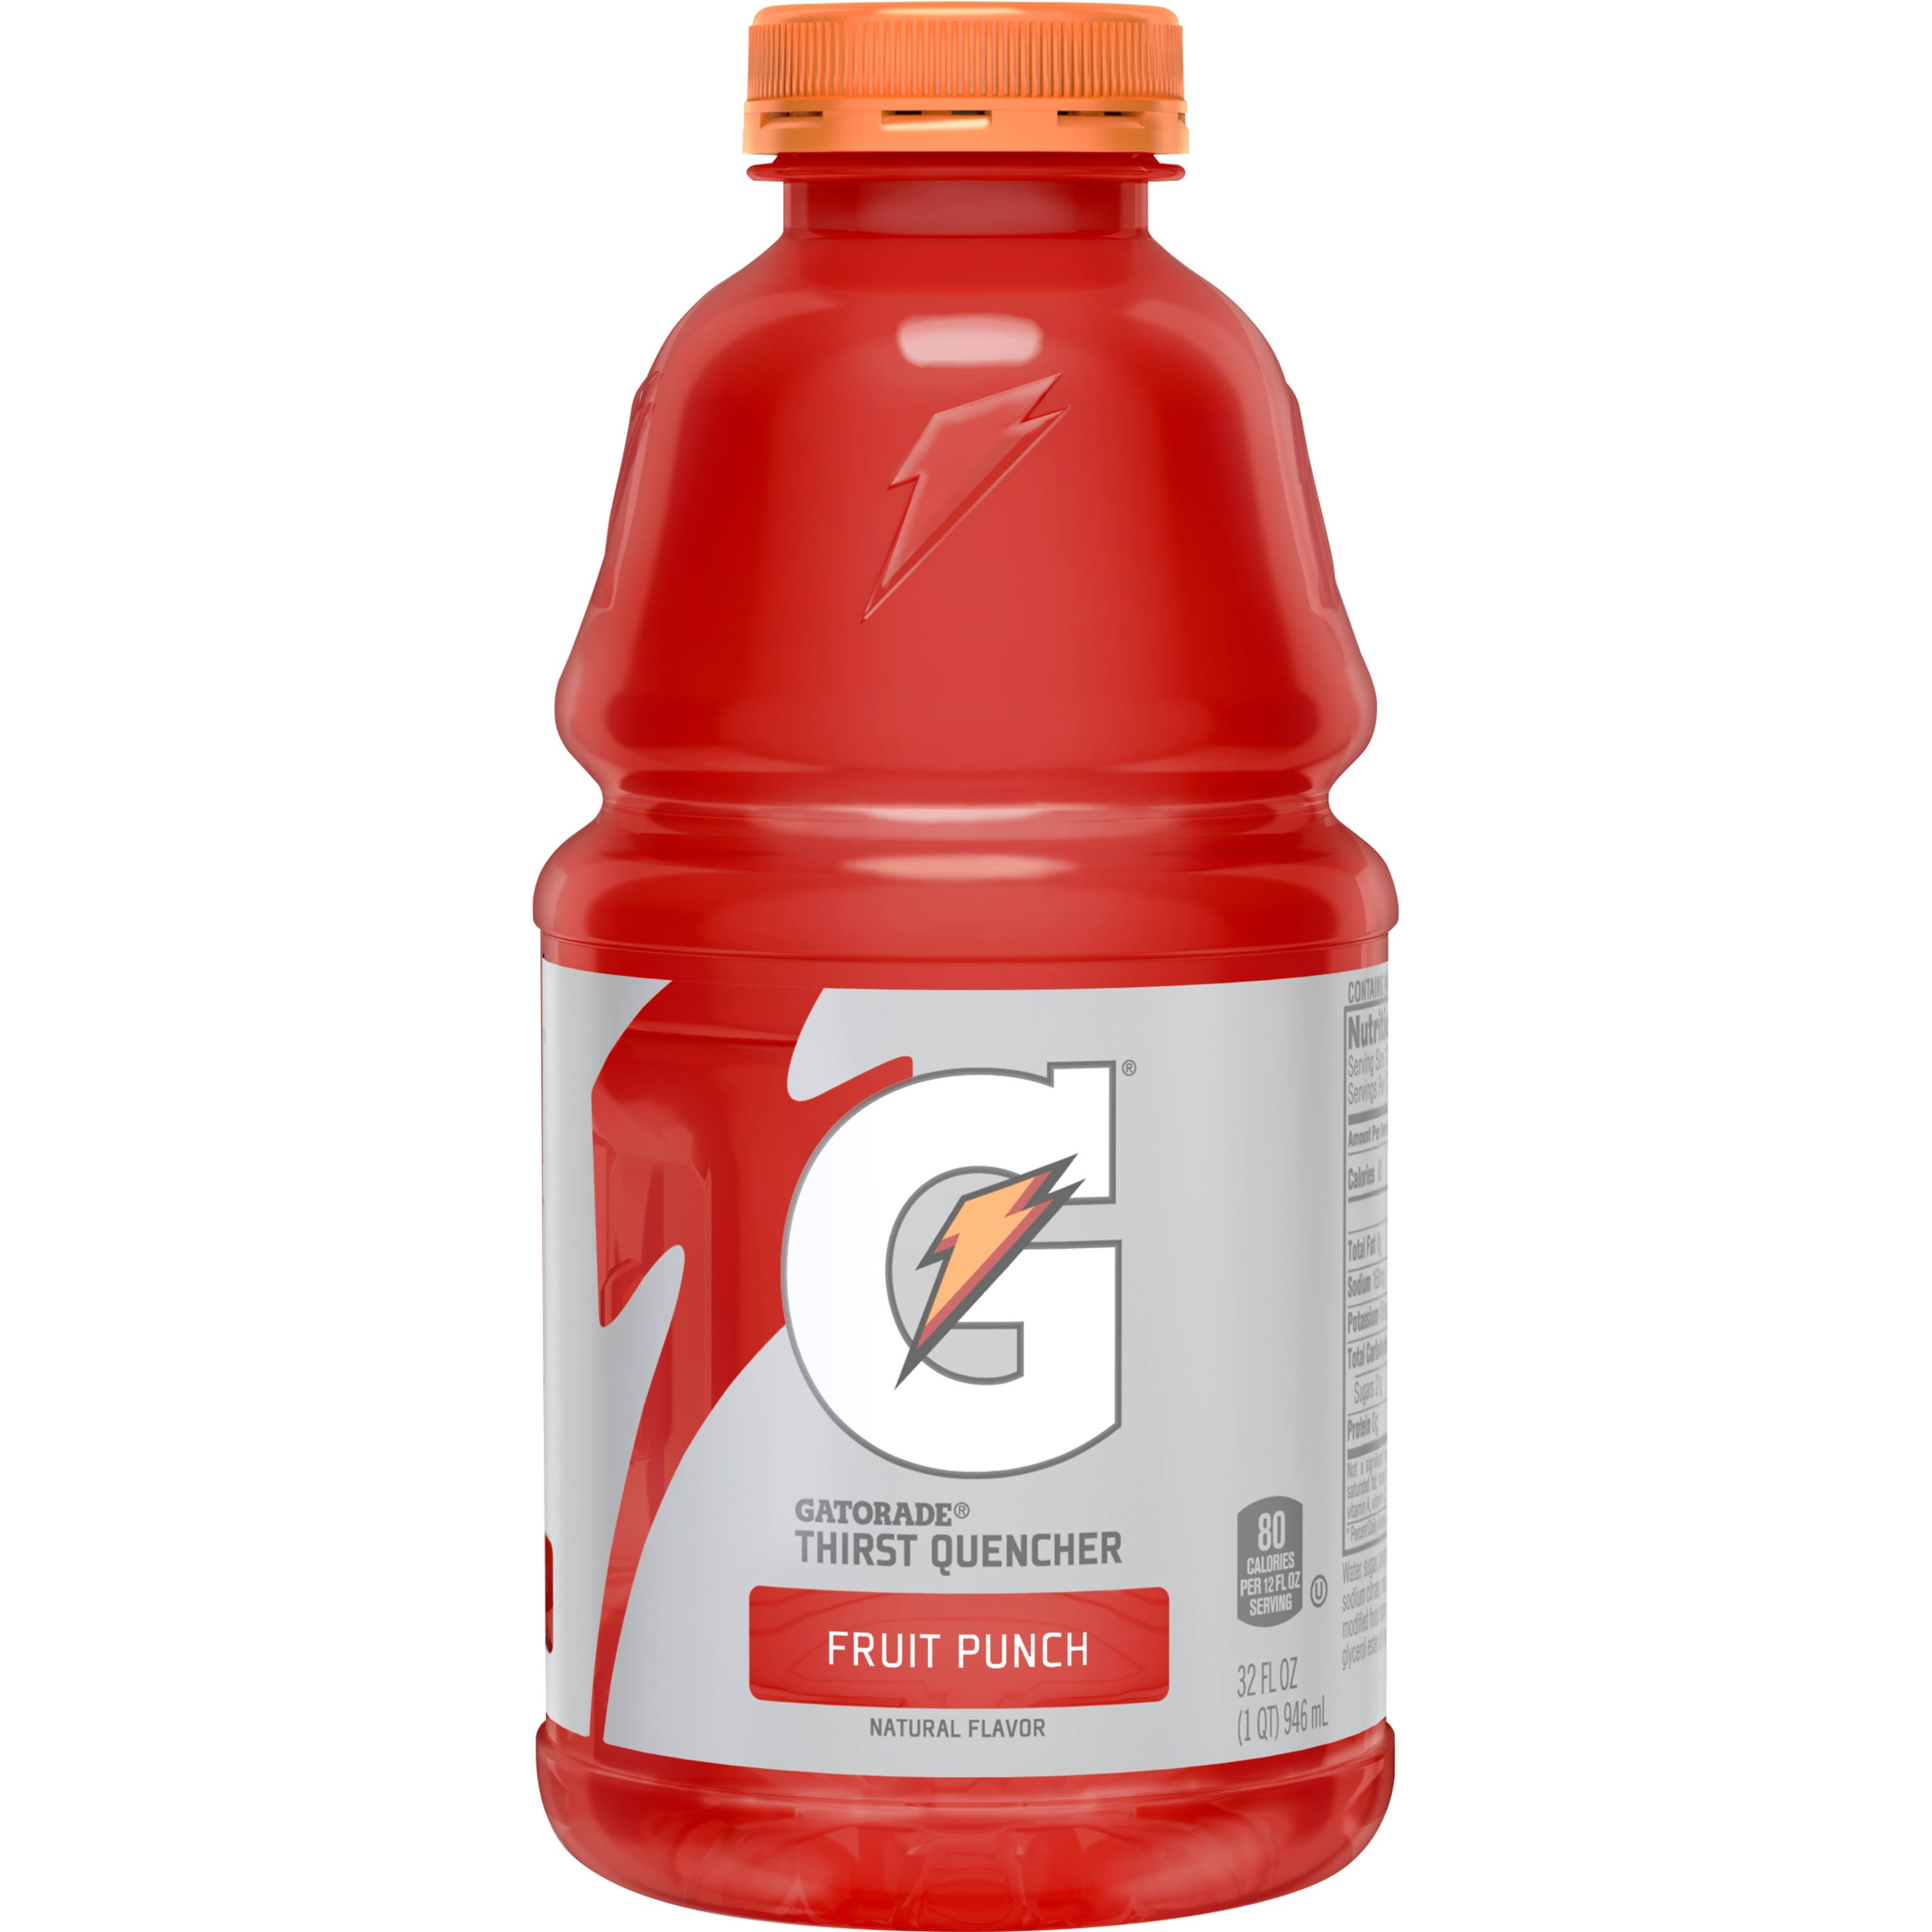 Gatorade Thirst Quencher - Fruit Punch, 32oz